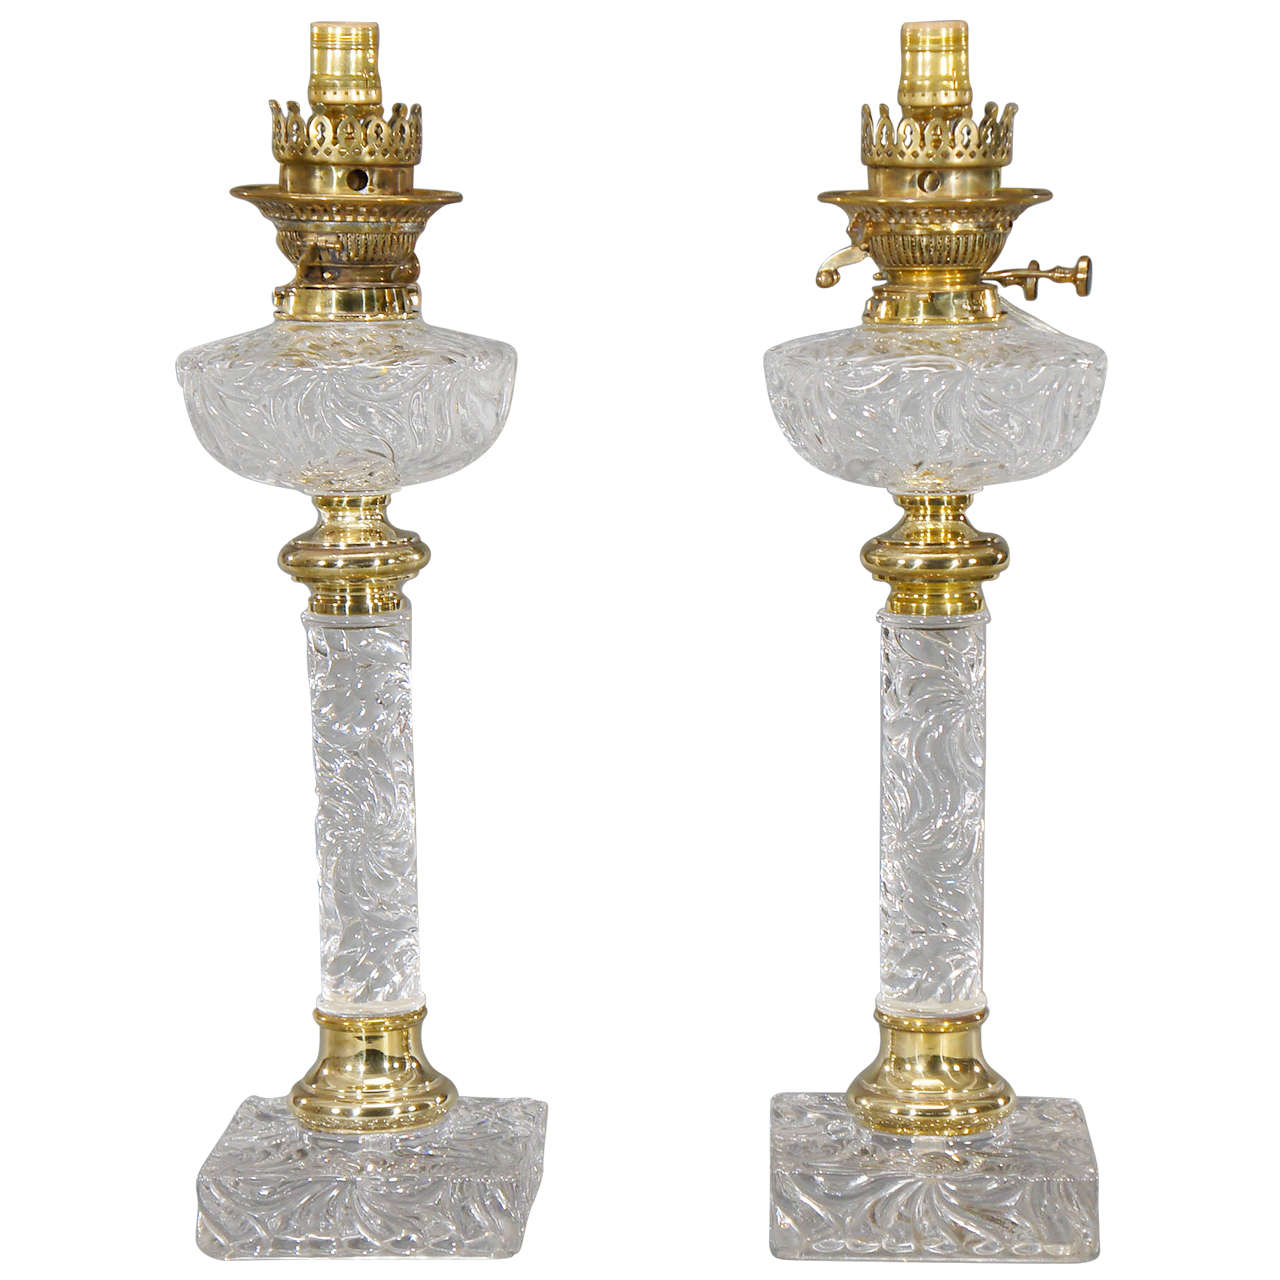 Original Lamps pair of baccarat molded crystal lamps with original fonts and